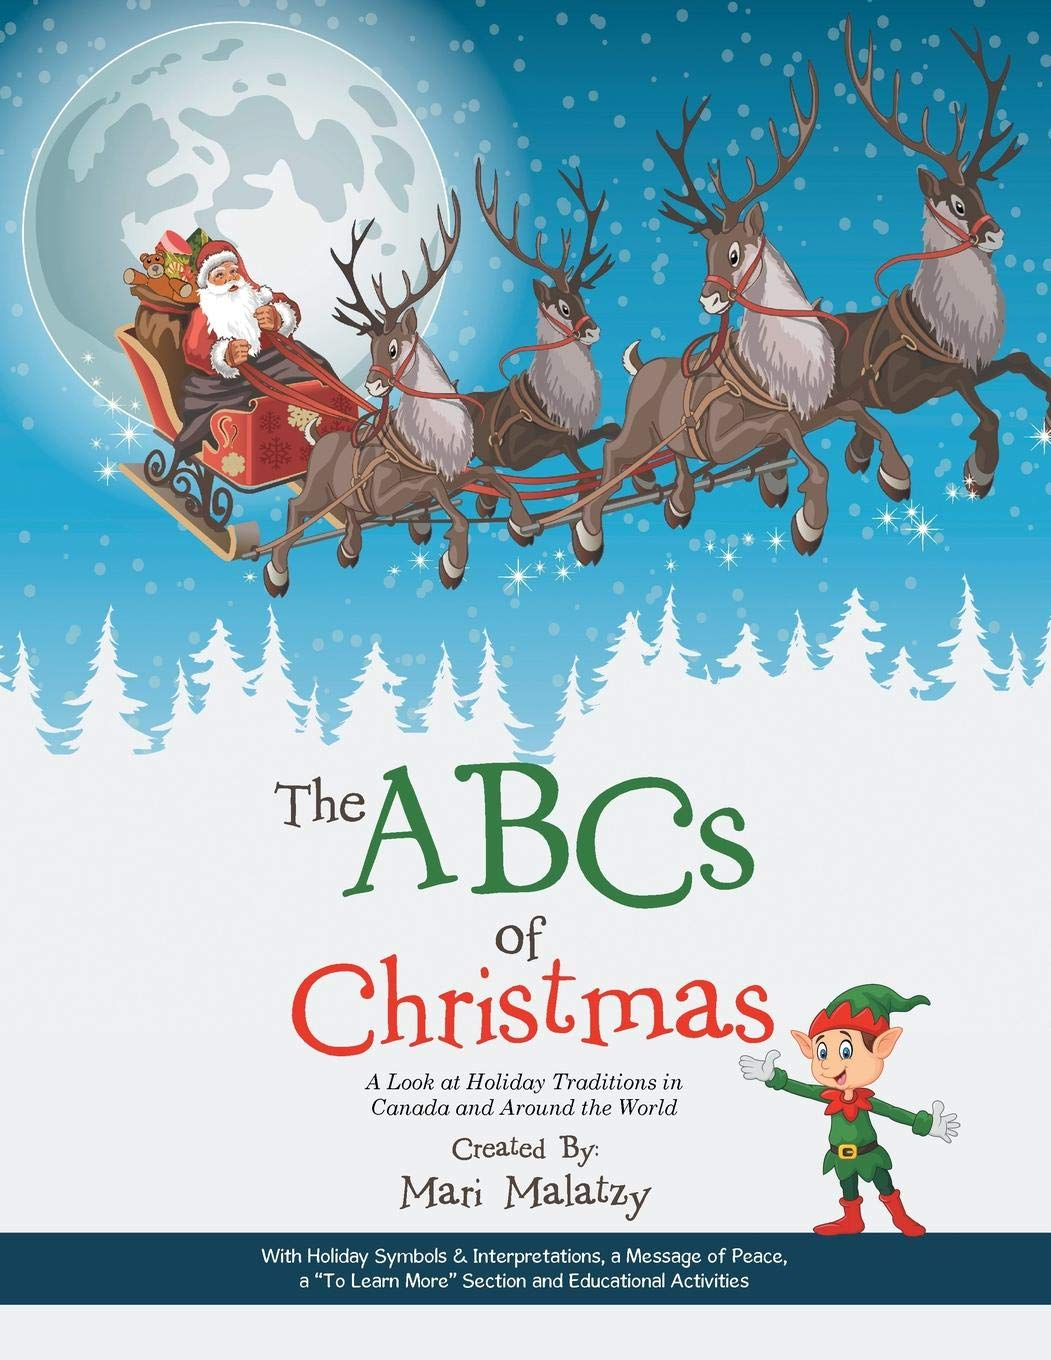 The Abcs of Christmas: A Look at Holiday Traditions in Canada and Around the World PDF